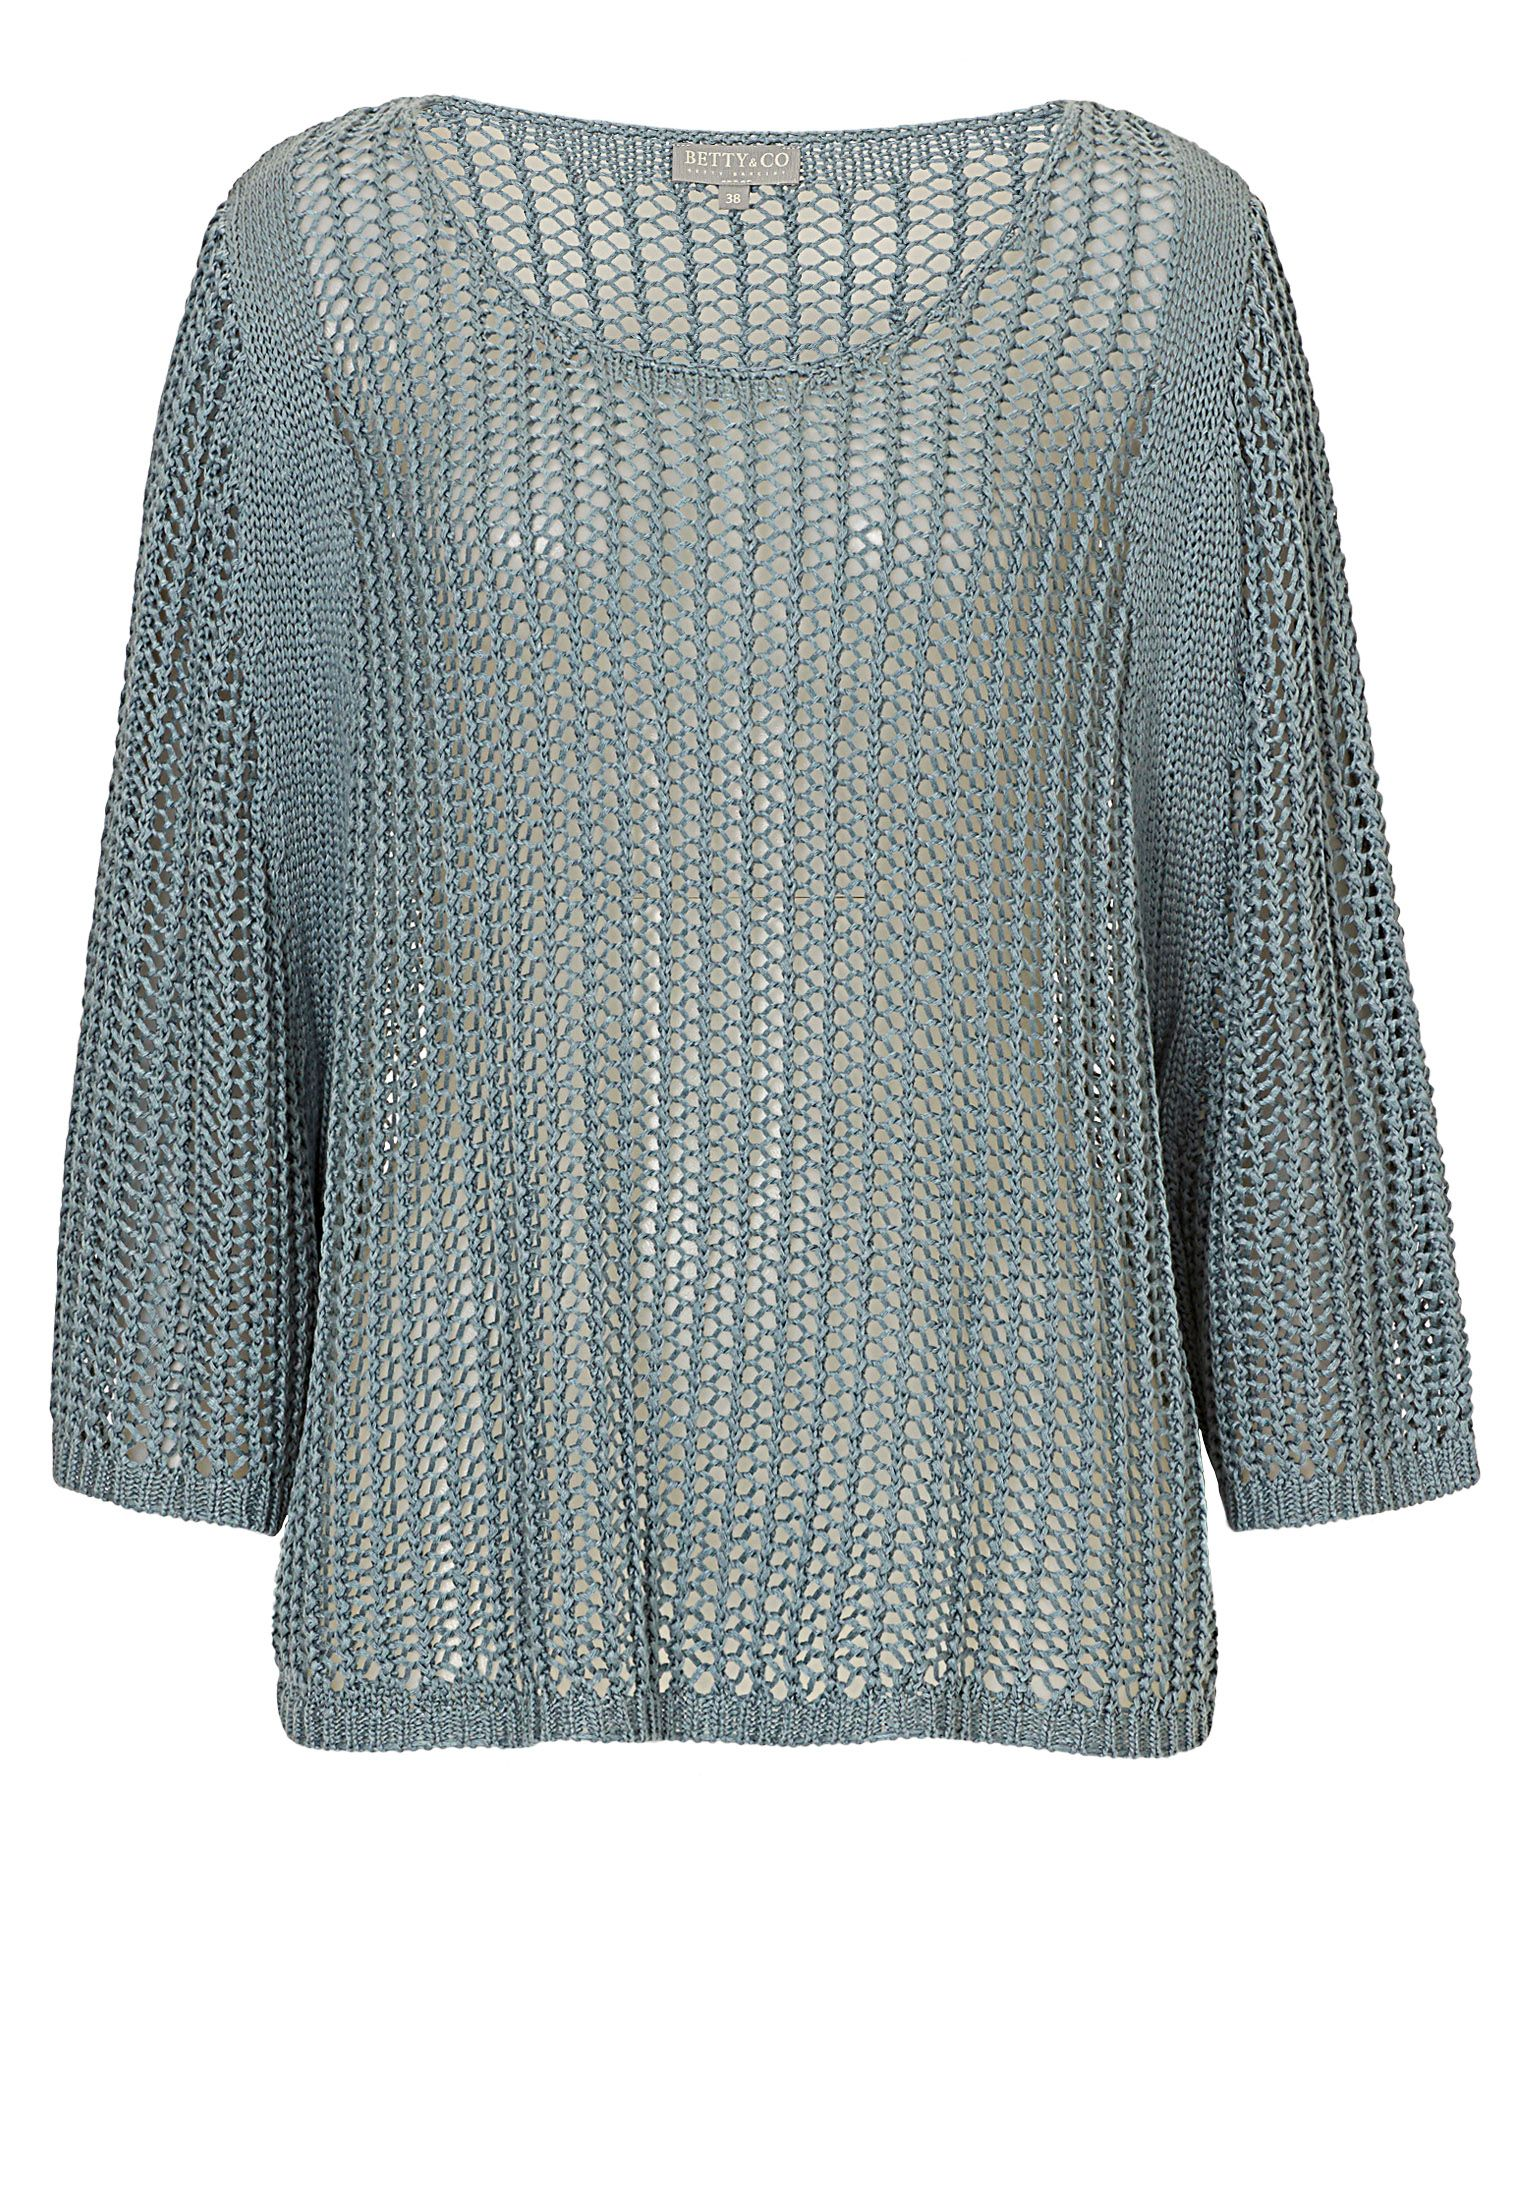 Betty & Co. Open Knit Poncho Top, Blue